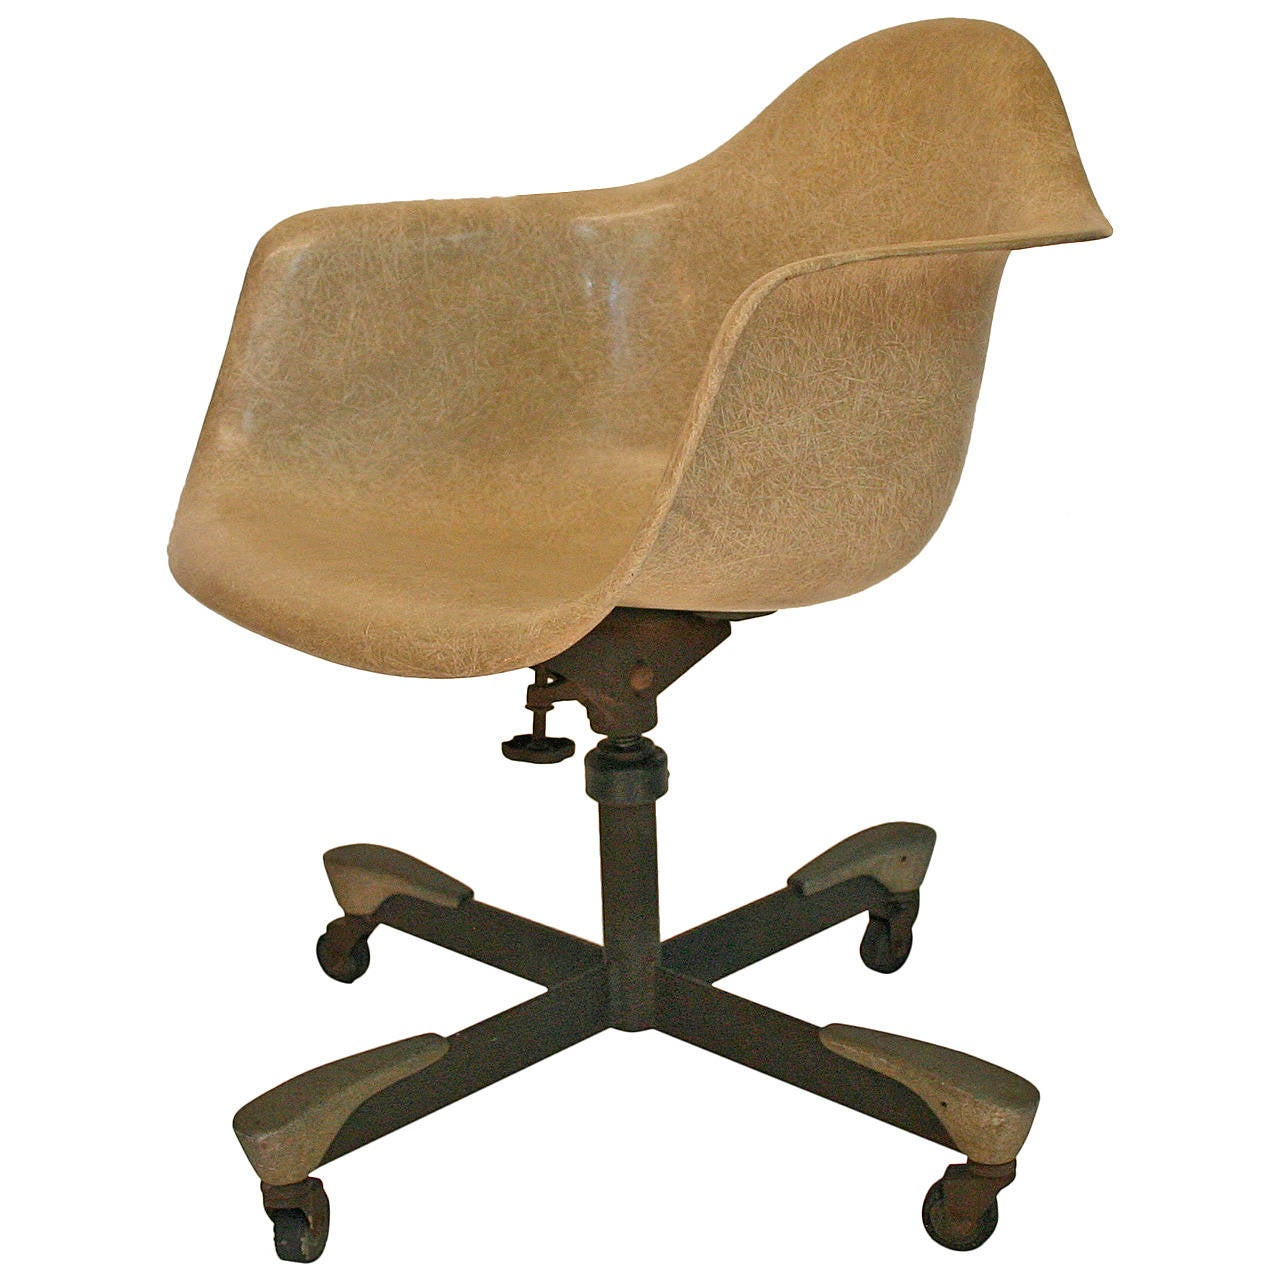 Eames Fiberglass Rolling Chair for Herman Miller at 1stdibs